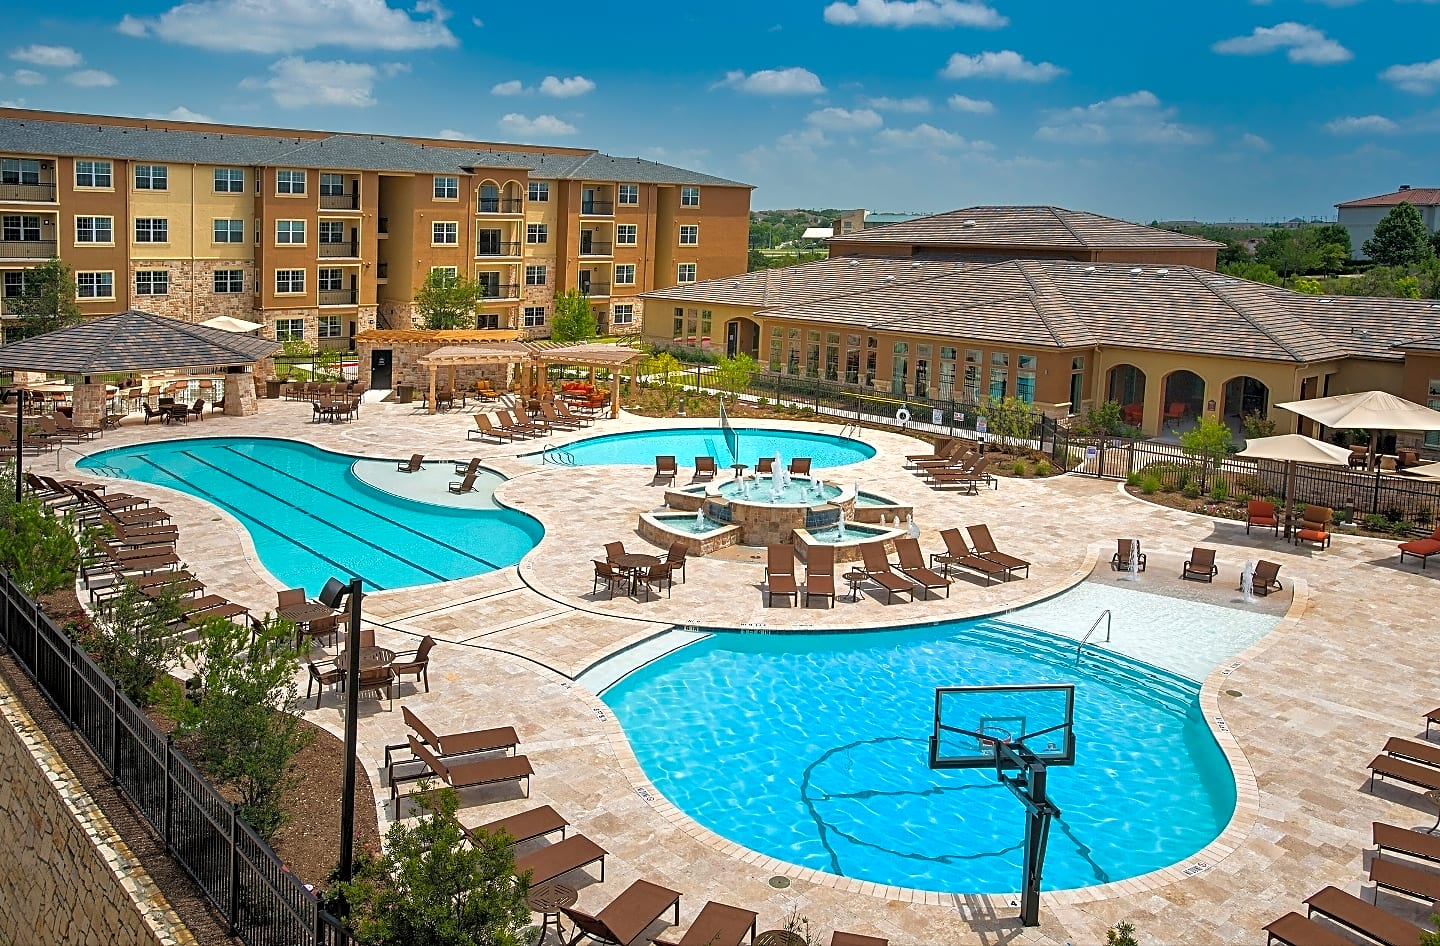 Villas In Westover Hills Apartments San Antonio Tx 78251